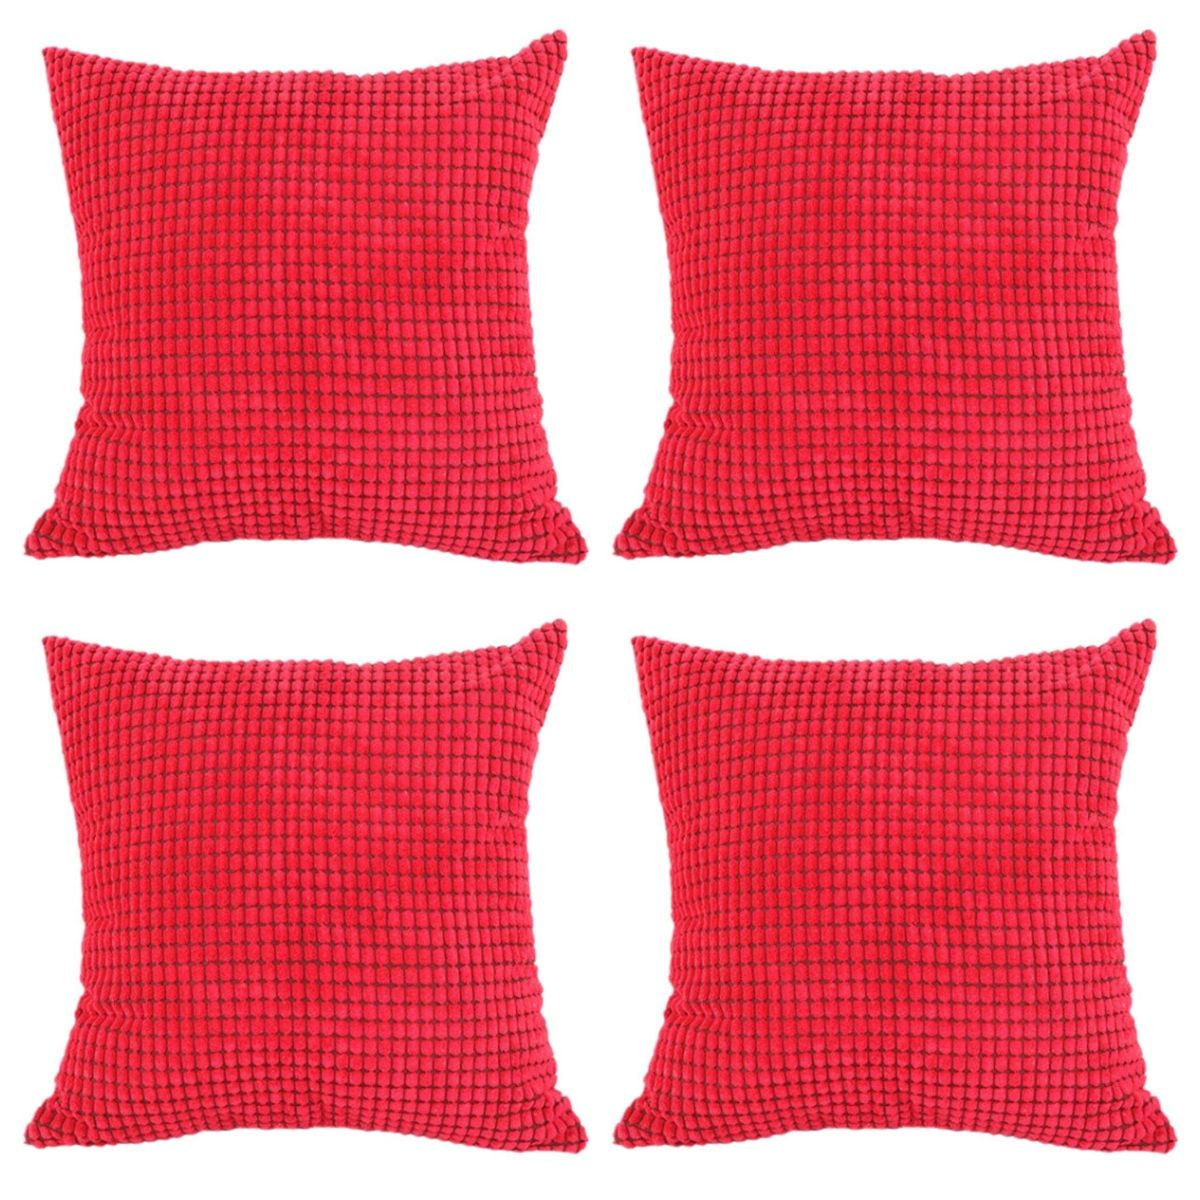 Solid throw pillow set of corduroy pillow cushionmultiple colors